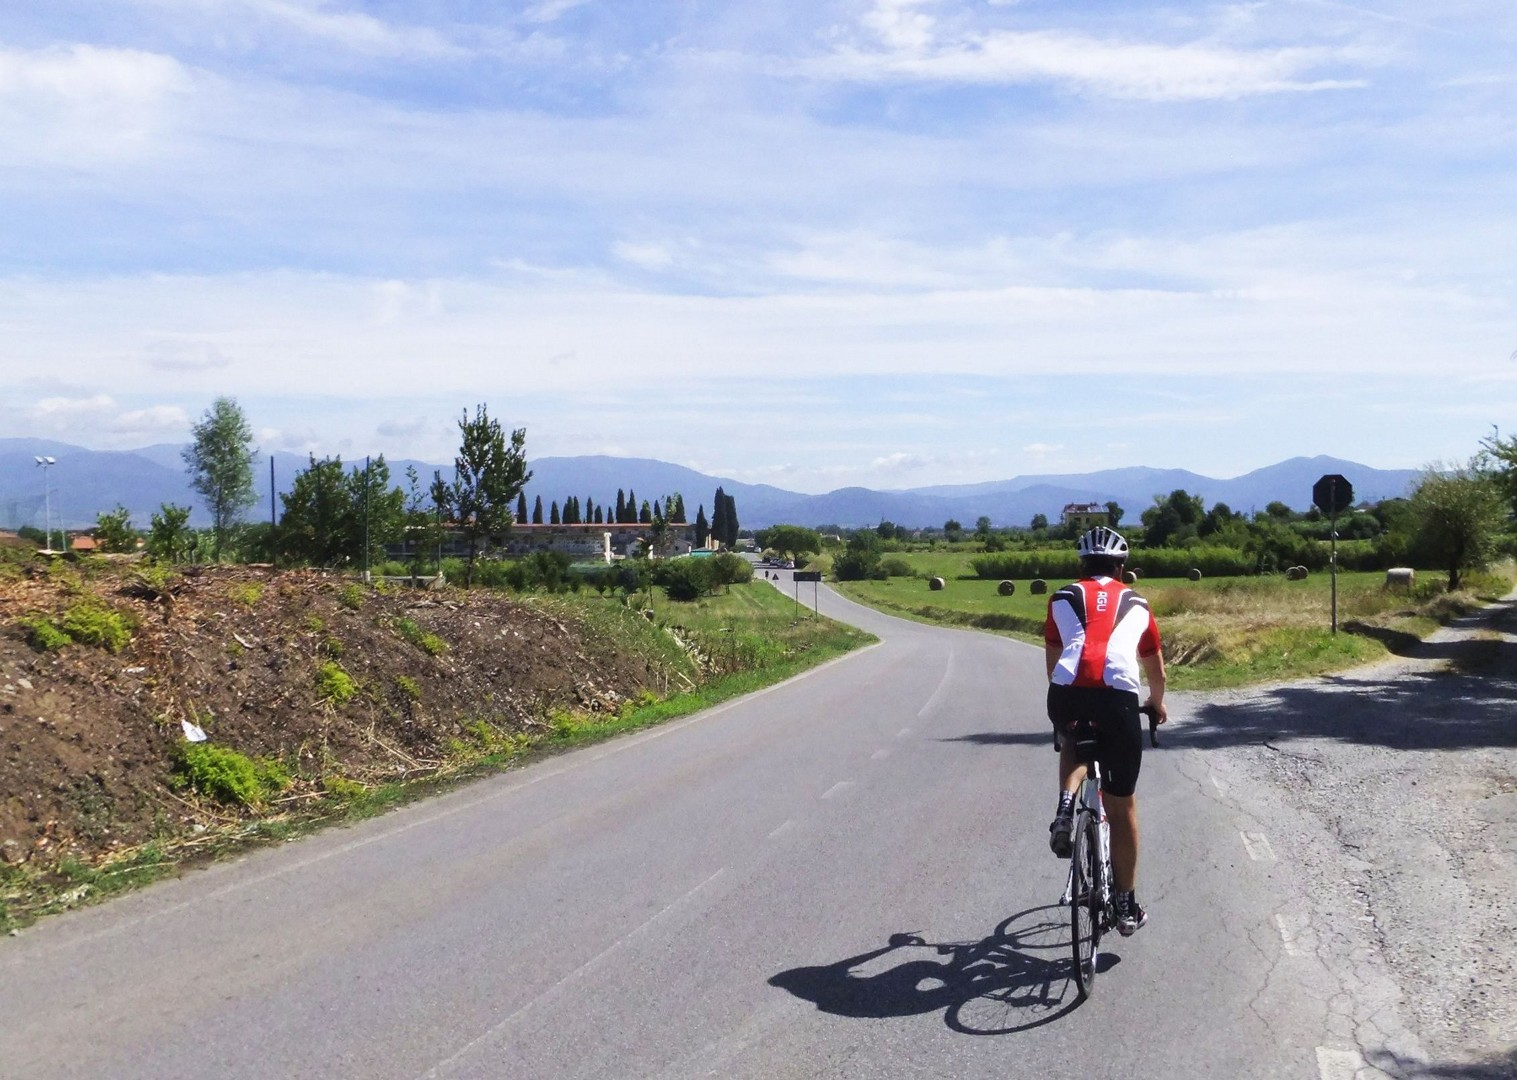 strade-di-fausto-coppi-road-cycling-holiday-italy-piemonte.jpg - NEW! Italy - Piemonte - La Strada del Vino - Road Cycling